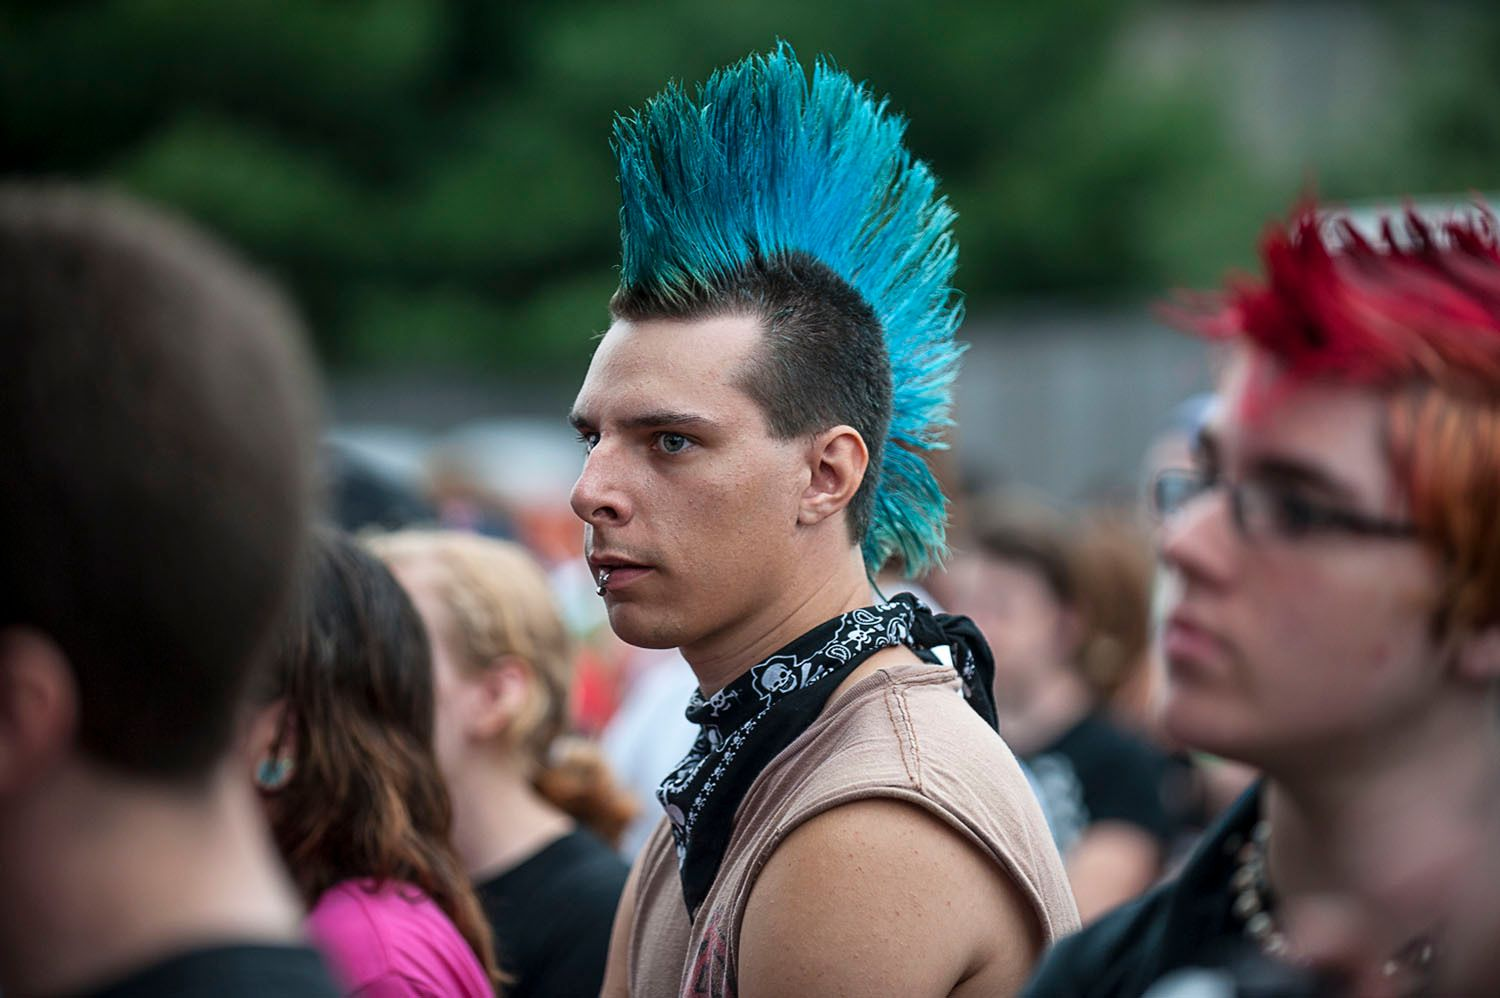 Man with blue mohawk haircut